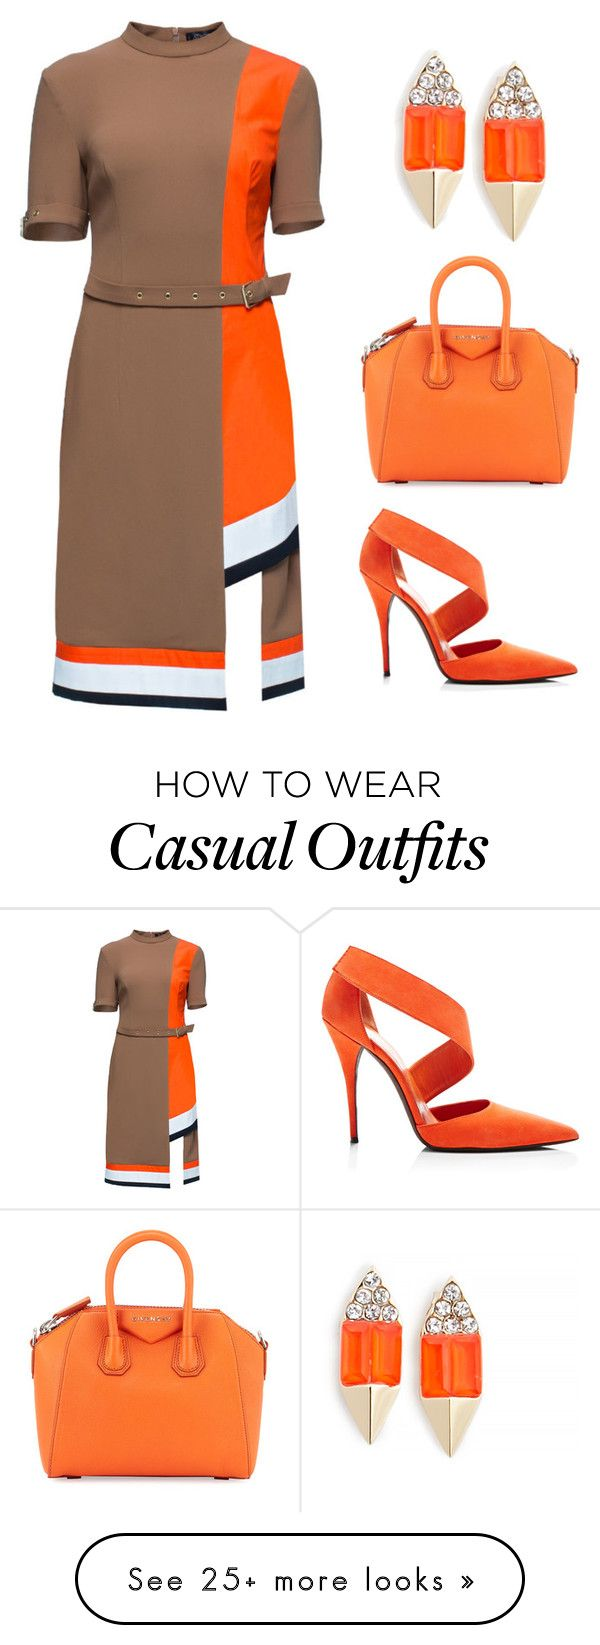 """""""Orange Work Casual"""" by karmen-robles on Polyvore featuring Lattori, Narciso Rodriguez, Givenchy and Carolyn Colby"""